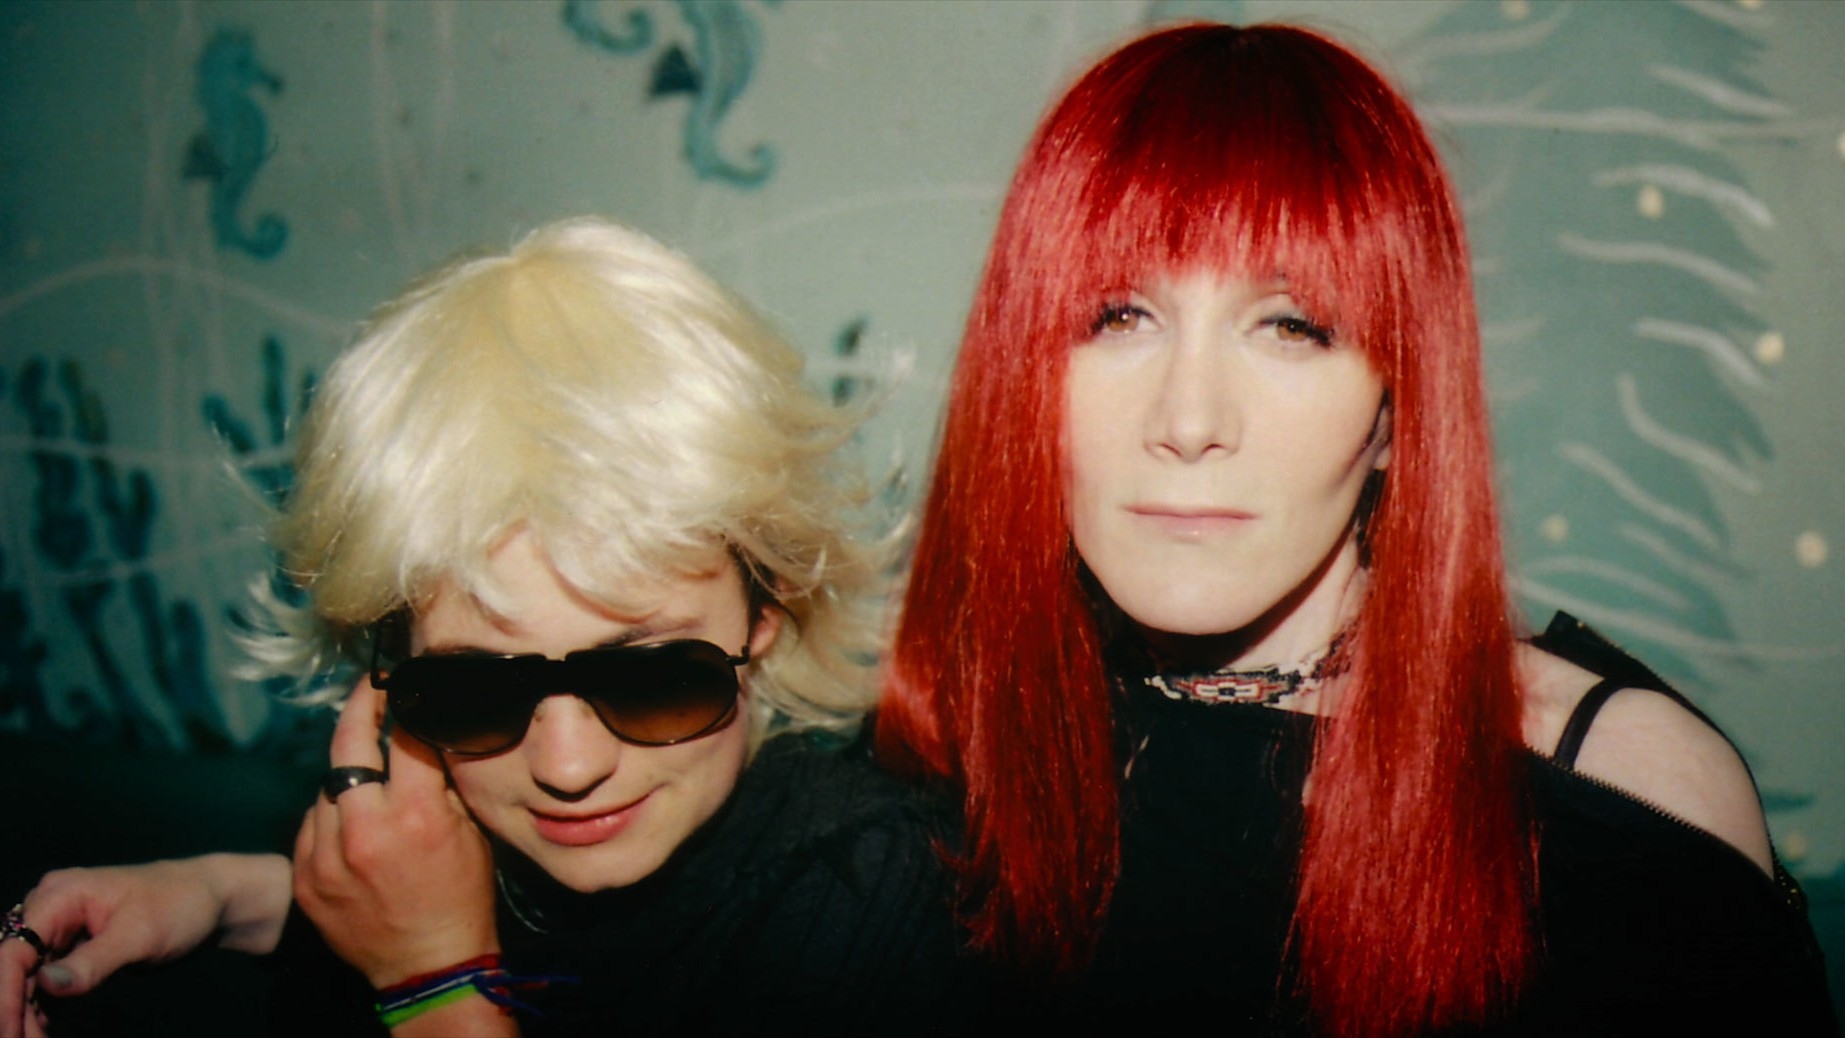 'I Wanted to Be That Boy': The Long Con of JT LeRoy